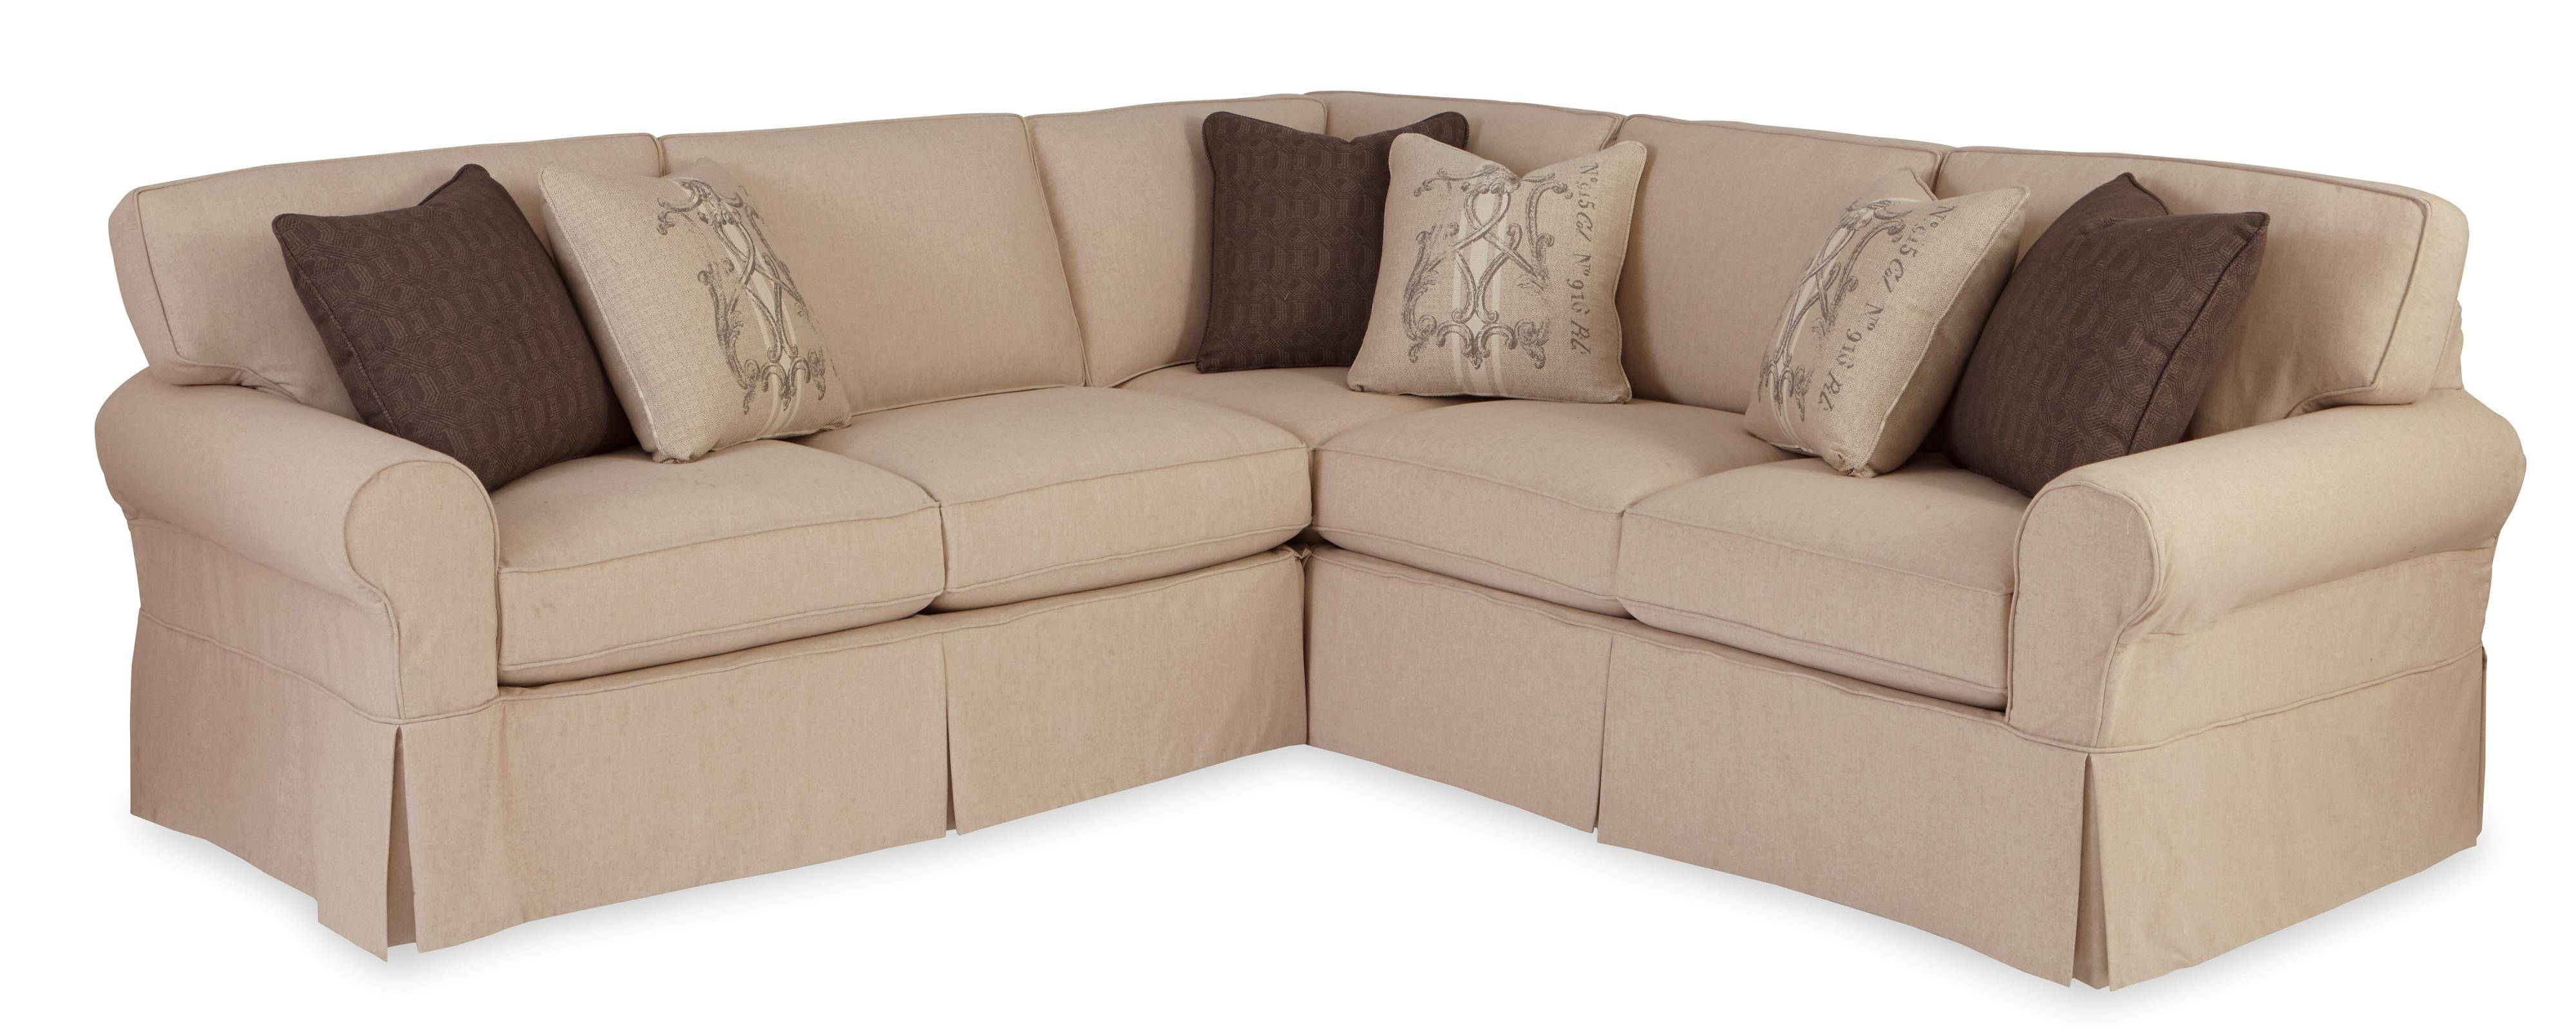 Furniture: Couch Covers At Walmart To Make Your Furniture Stylish inside Slipcover for Leather Sectional Sofas (Image 4 of 30)